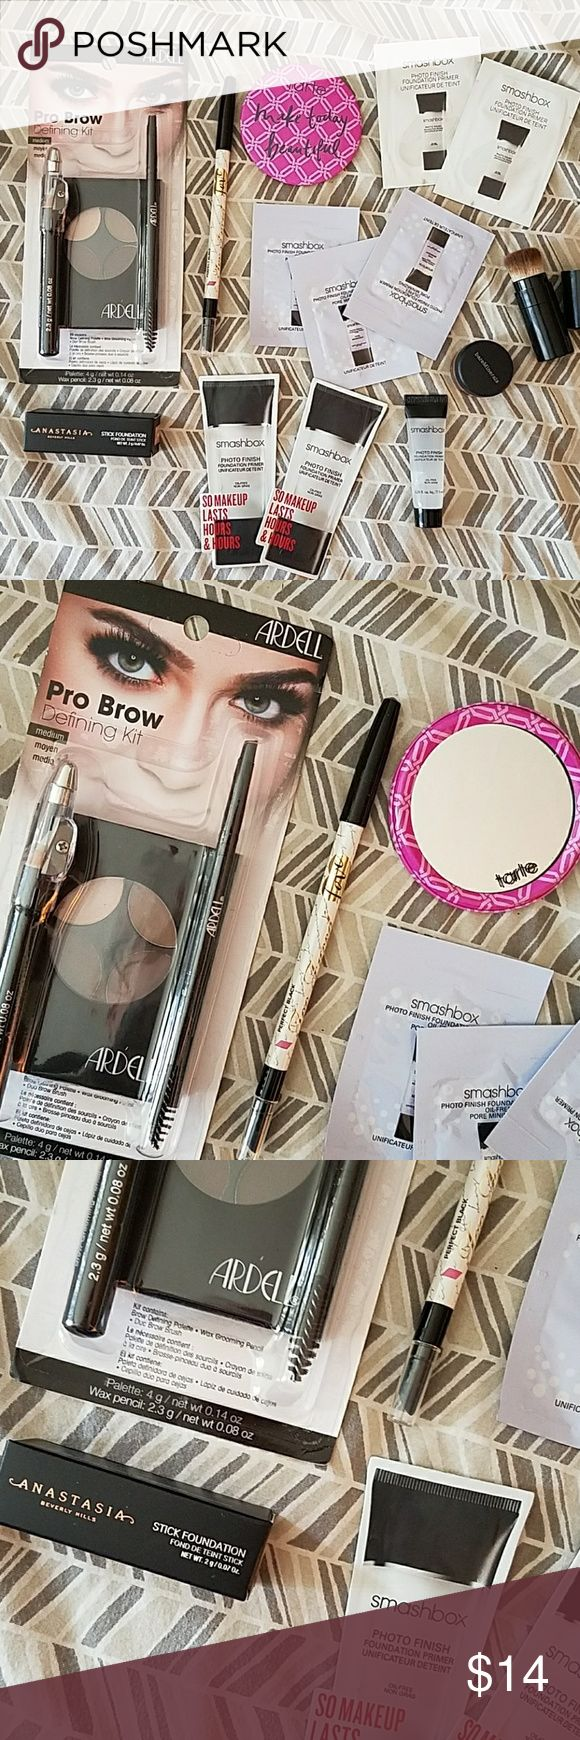 Lot of 22 new make up items smashbox etc Includes: Are all Pro Brow Defining Kit, Anastasia Stick Foundation in Fawn, 3 smashbox photofinish foundation primer samples(black & white), smashbox 0.25 photofinish foundation, bareMinerals queen tiffany eyeshadow, 3 smashbox photofinish foundation primer oil-free pore minimizing (blue square),  one black compact make up brush that folds up, and 2 smashbox photofinish foundation primer, and more! bareMinerals Makeup